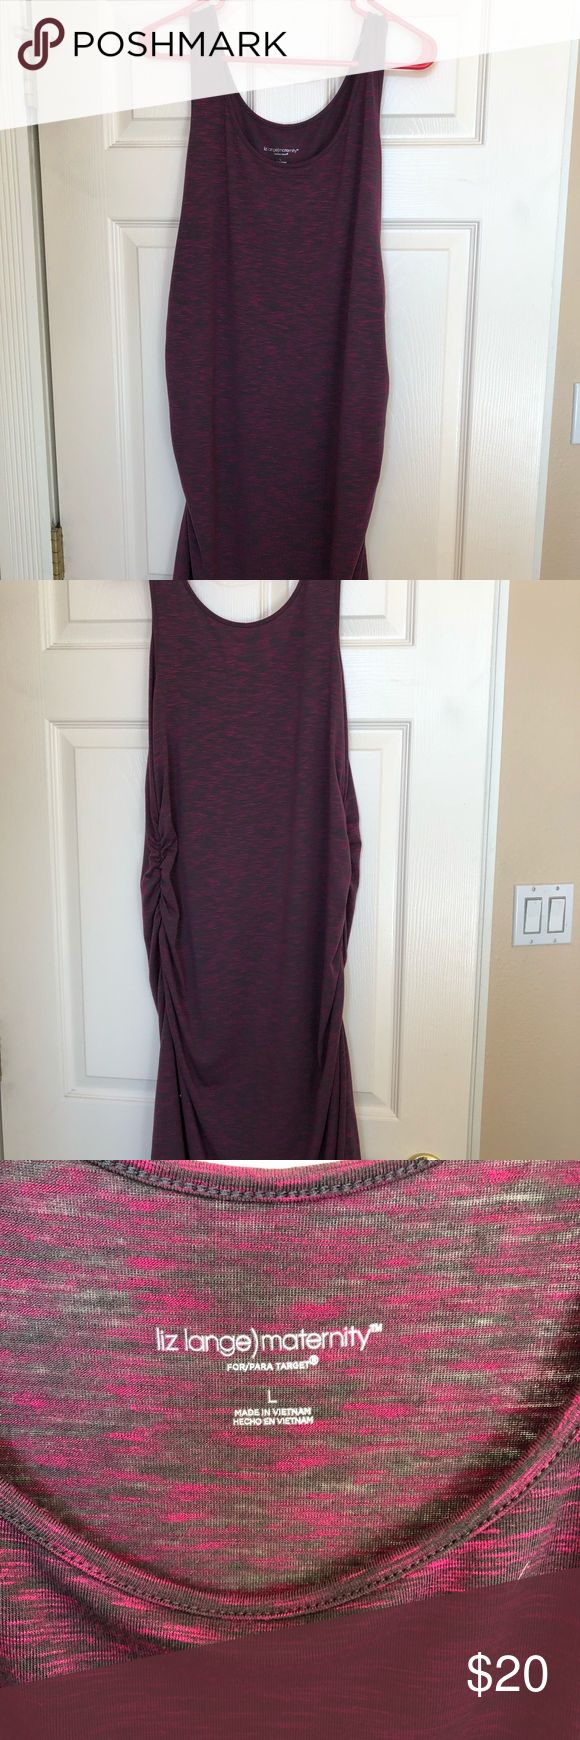 The 25 best purple maternity dresses ideas on pinterest purple maternity dress size l liz lange maternity target purple maternity dress brand new never worn with no tags pics cant show length but falls ombrellifo Images